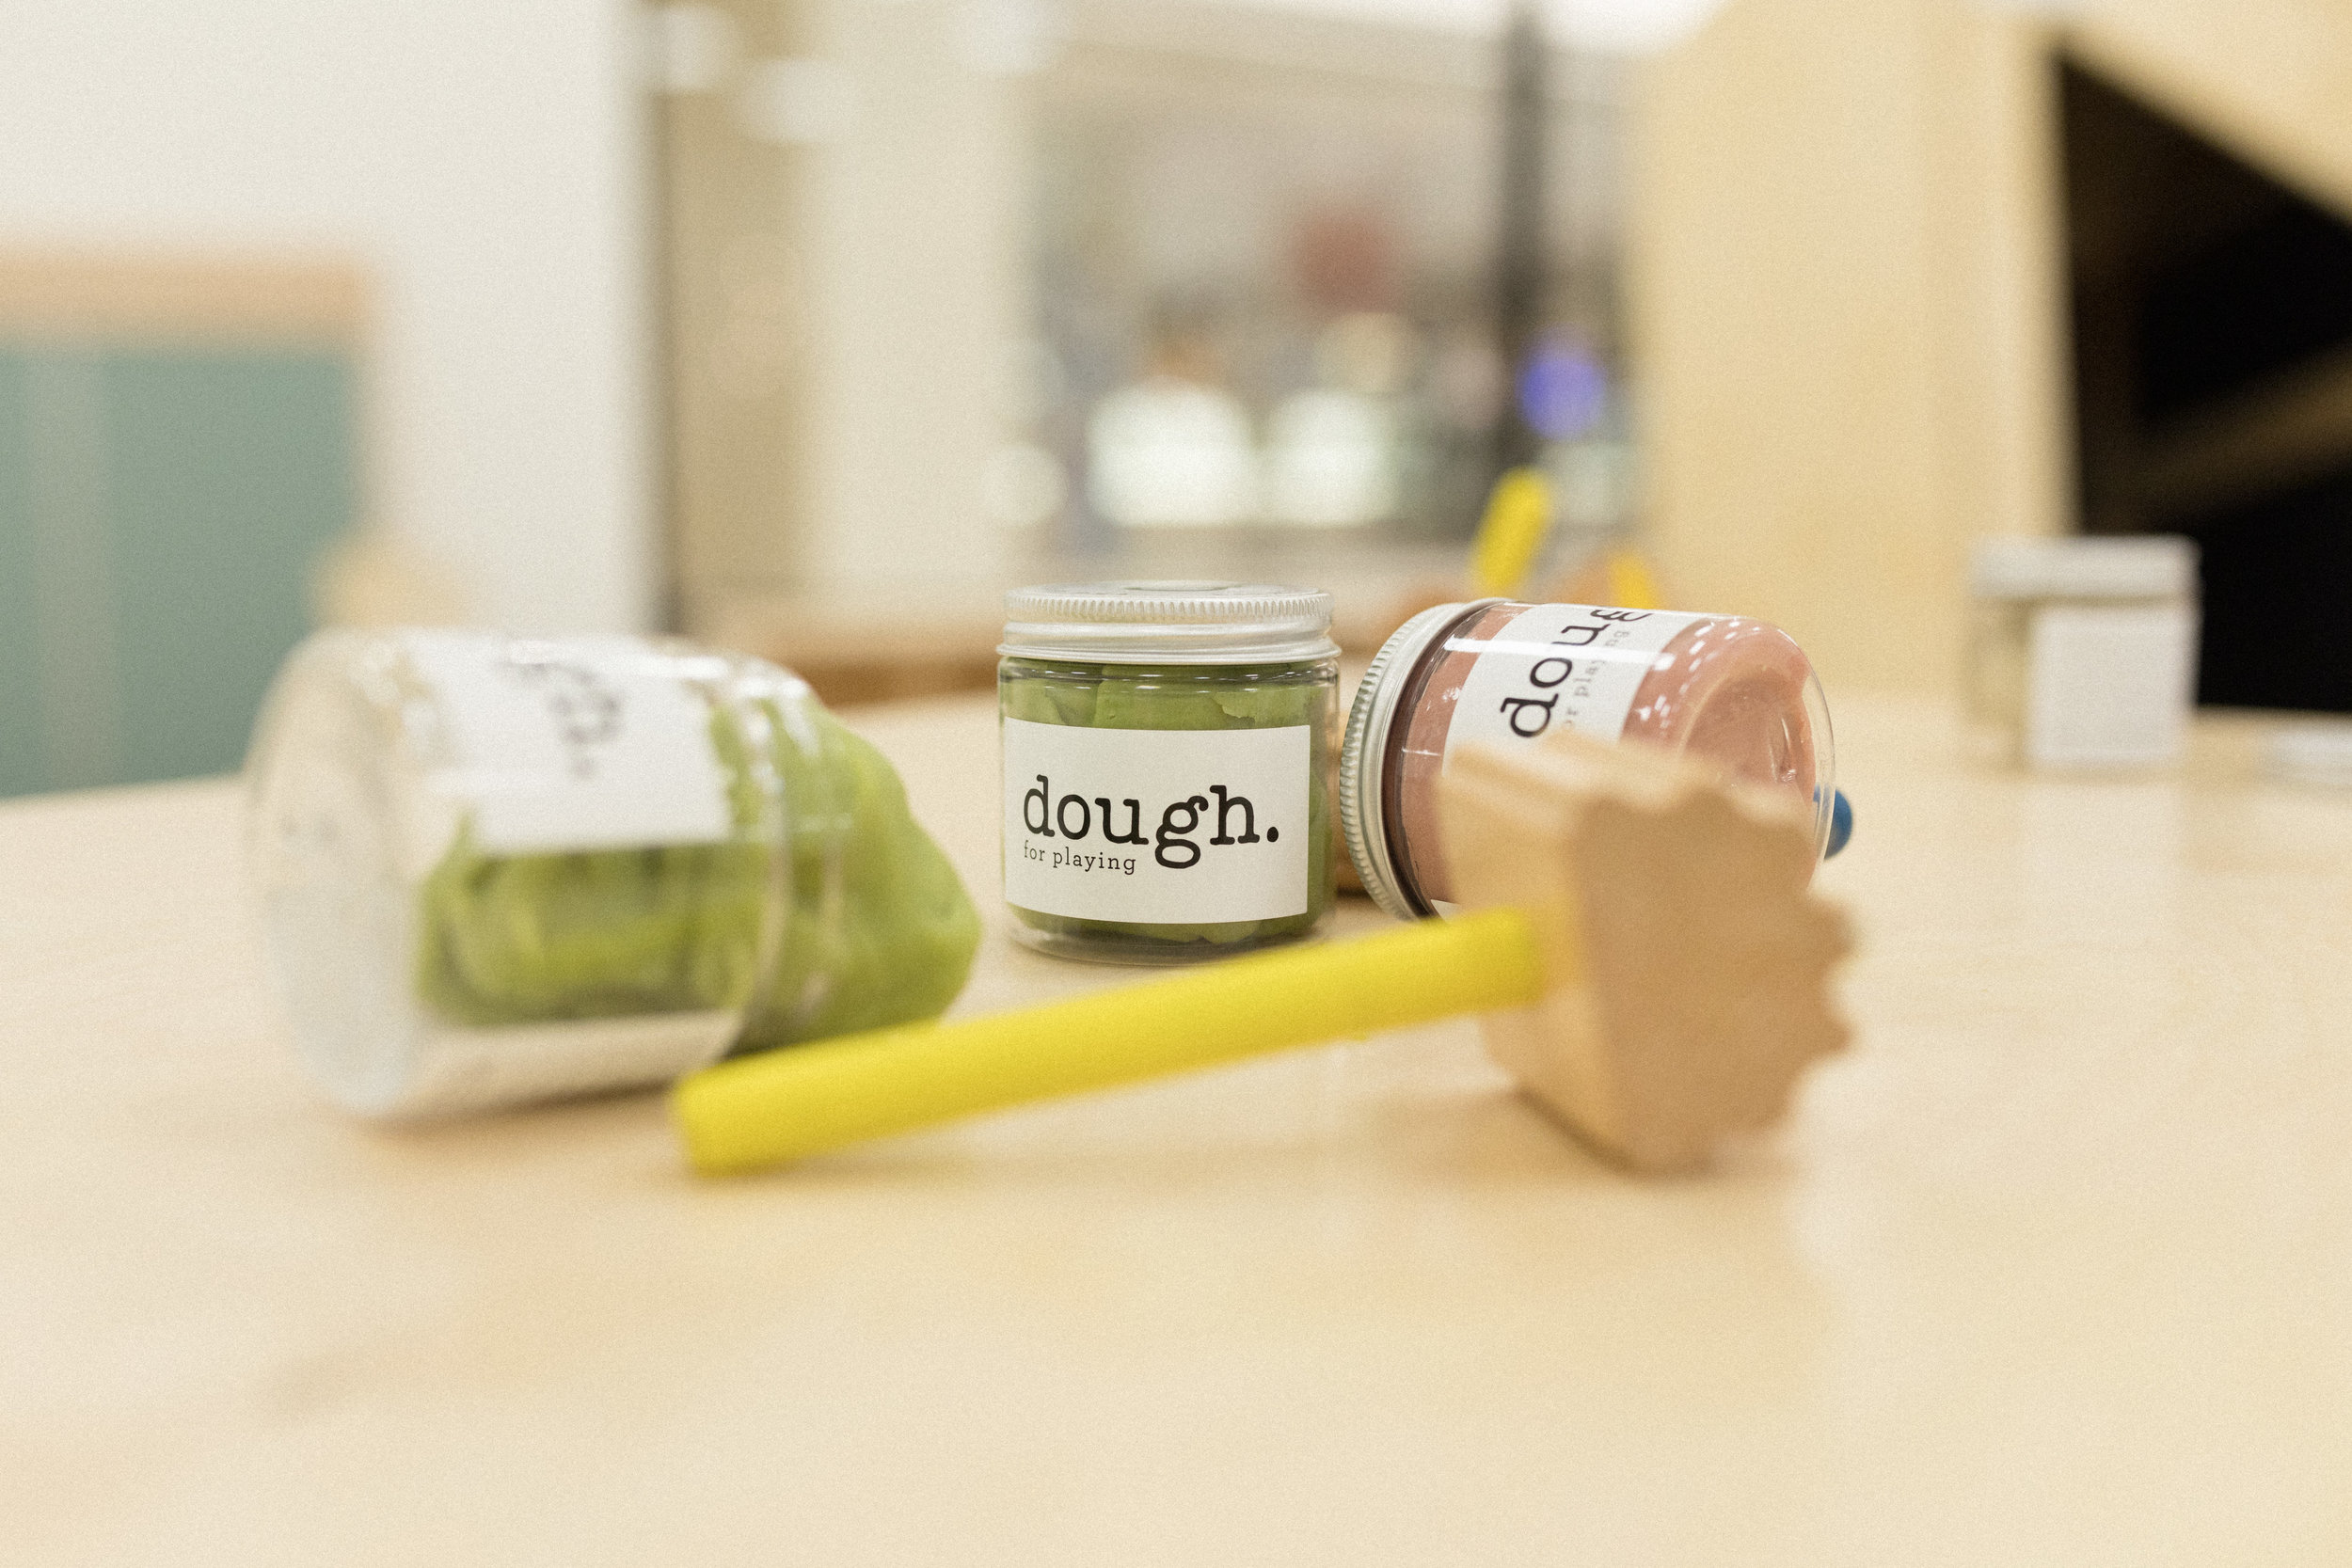 Discover THE DOUGH PROJECT - Come in and roll out dough at our Nook locations!